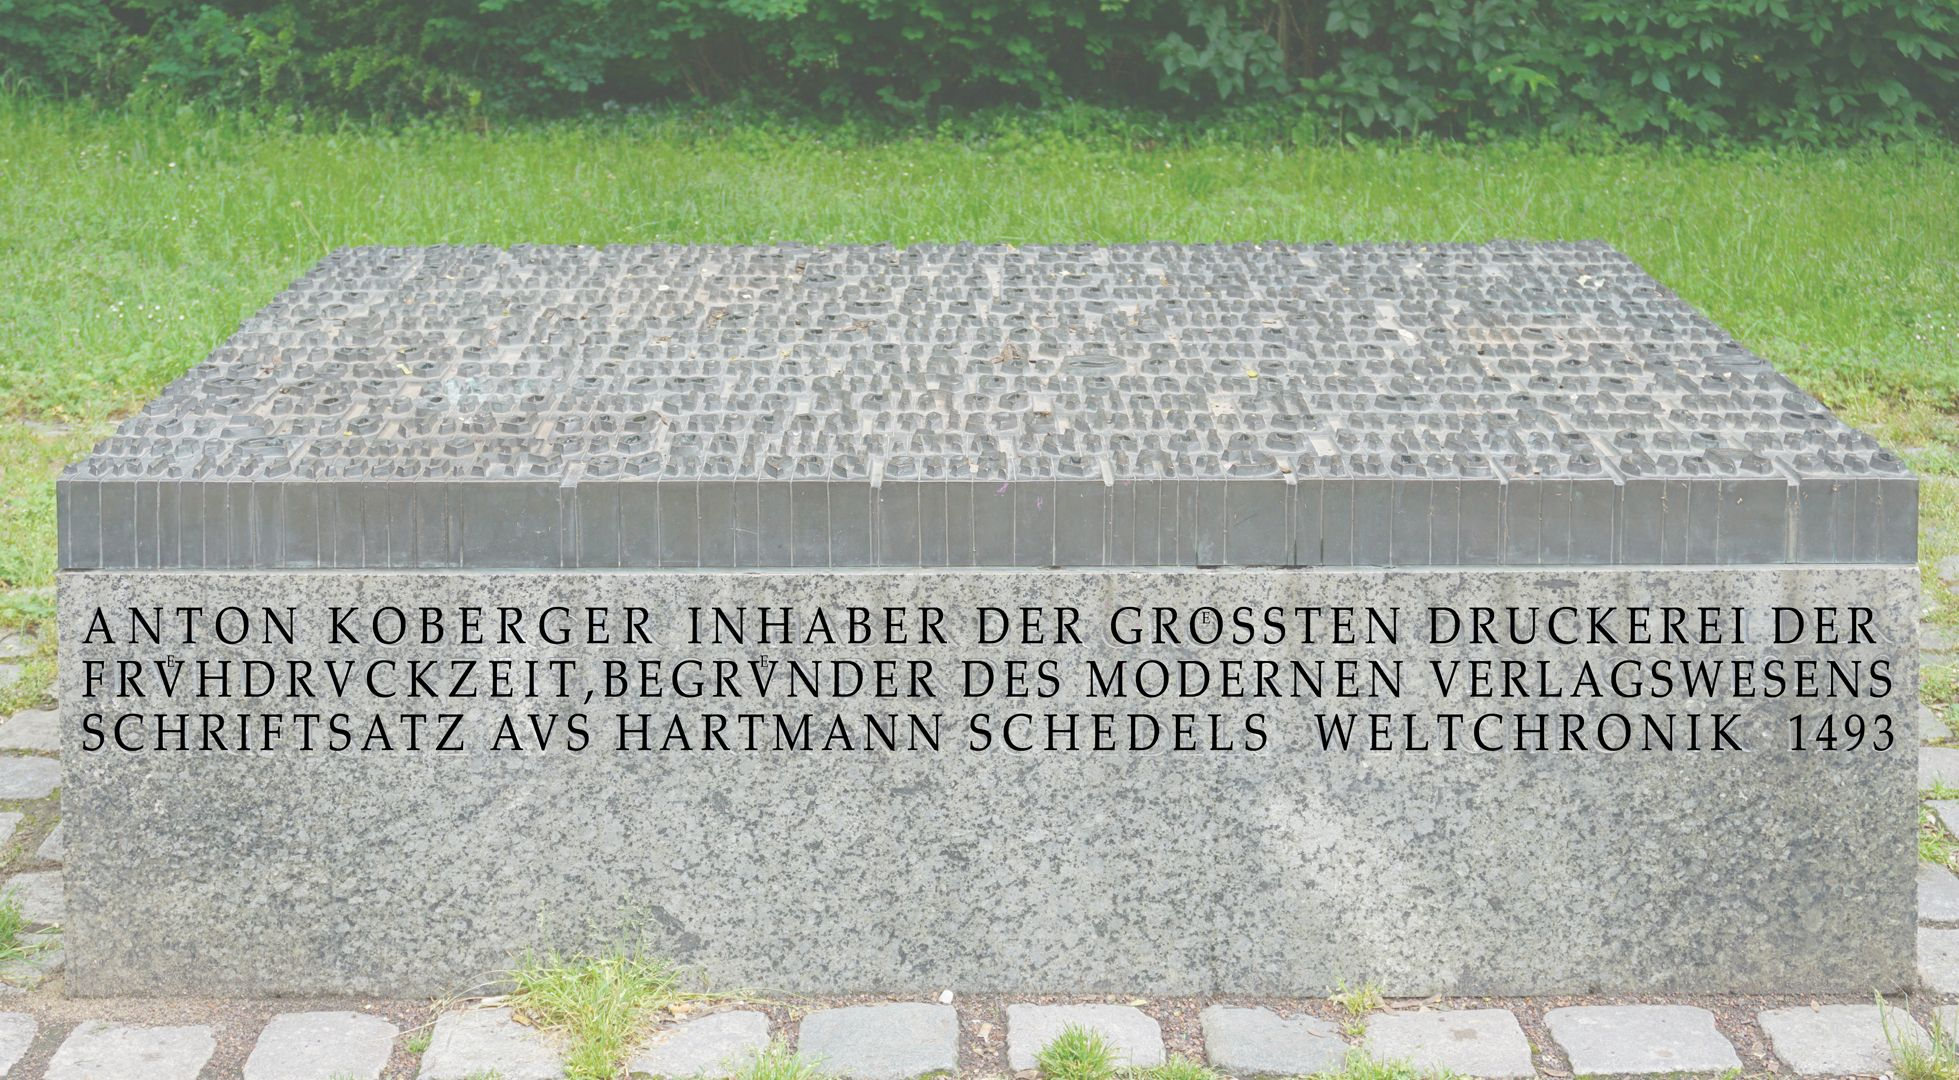 Anton Koberger / Memorial Stone Front side with inscription text (later photo editing)